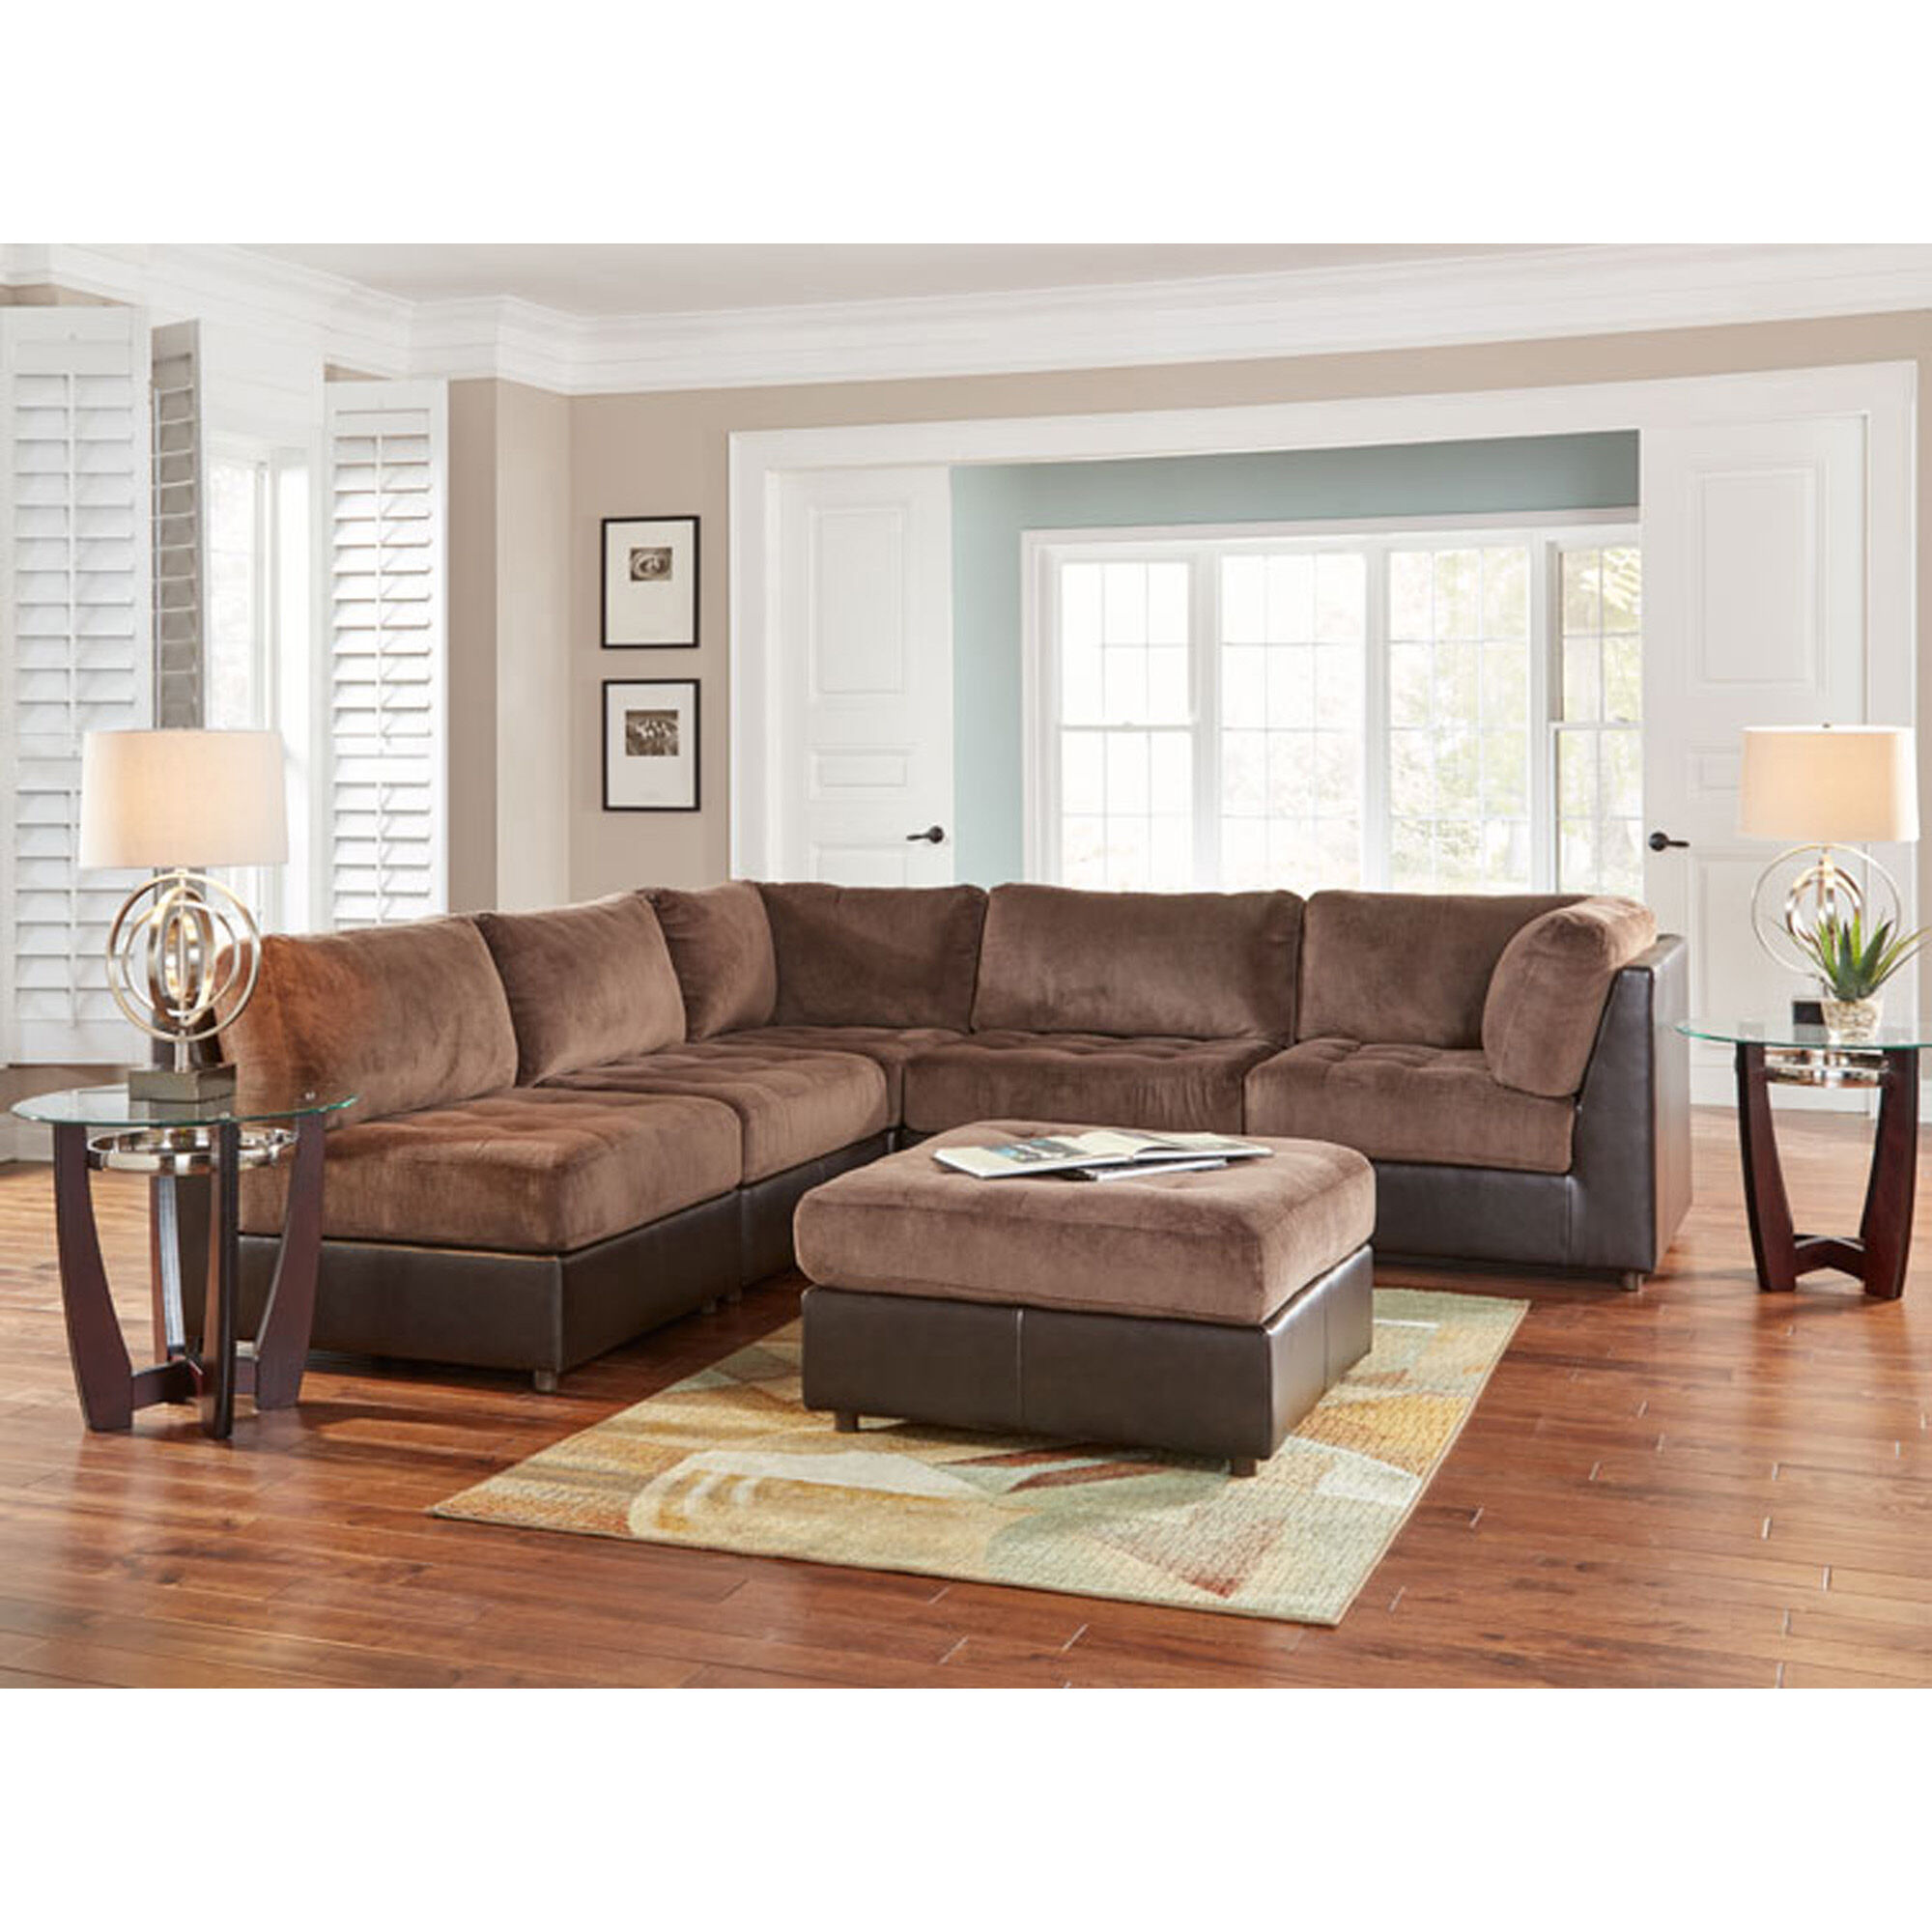 High Quality 10 Piece Hennessy Living Room Collection